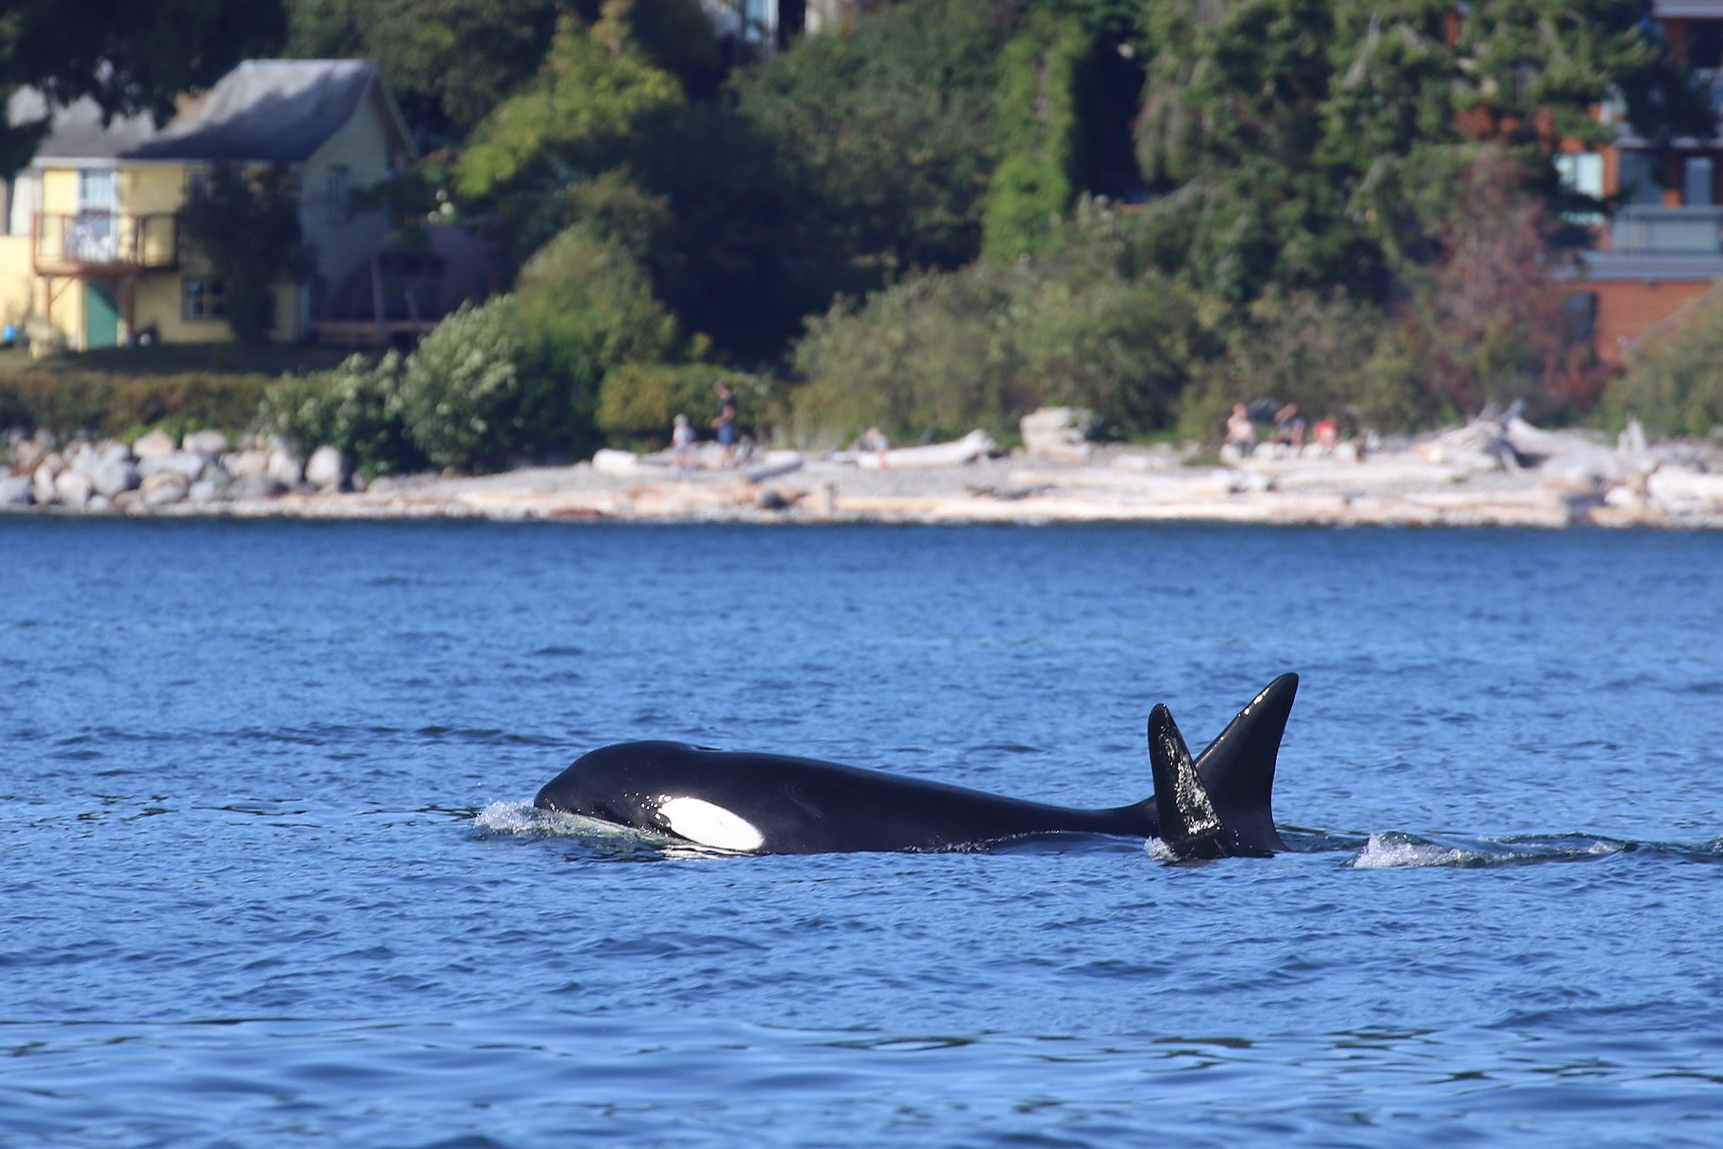 """T101 - """"Reef"""" with one of her sons right along side. Photo by Cheyenne Brewster (3:30)."""